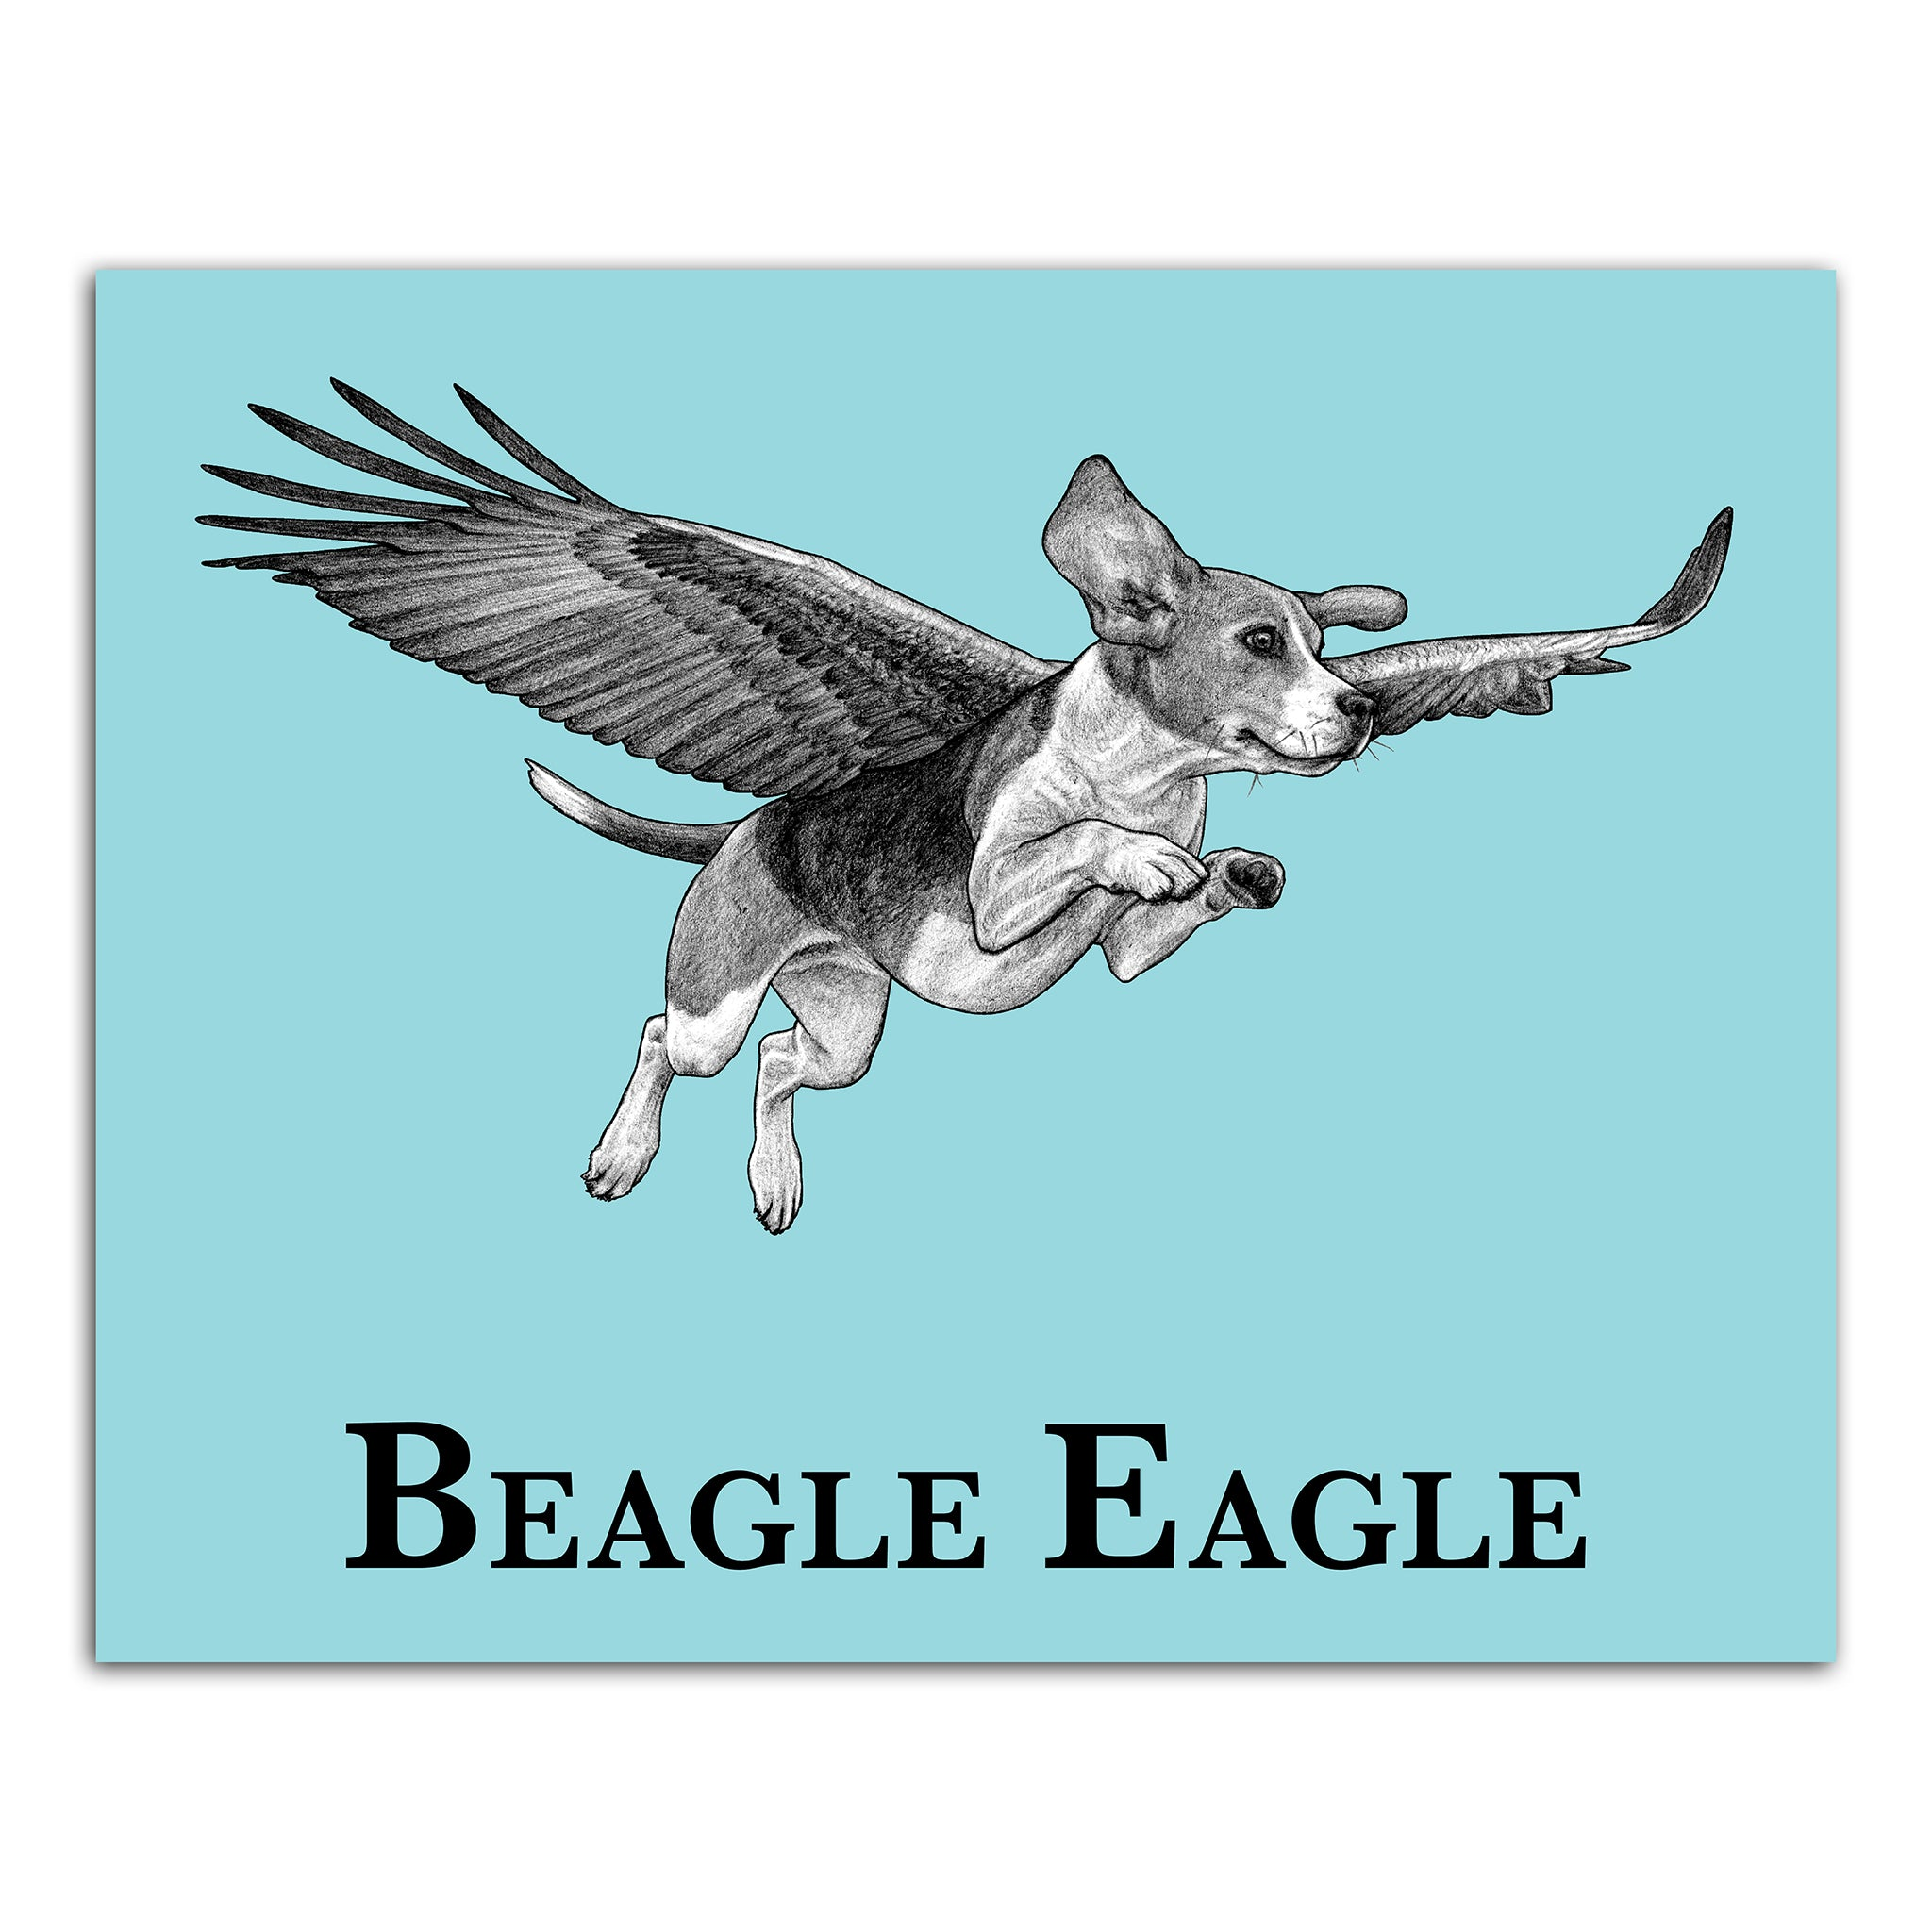 "Beagle Eagle 8x10"" Art Print"